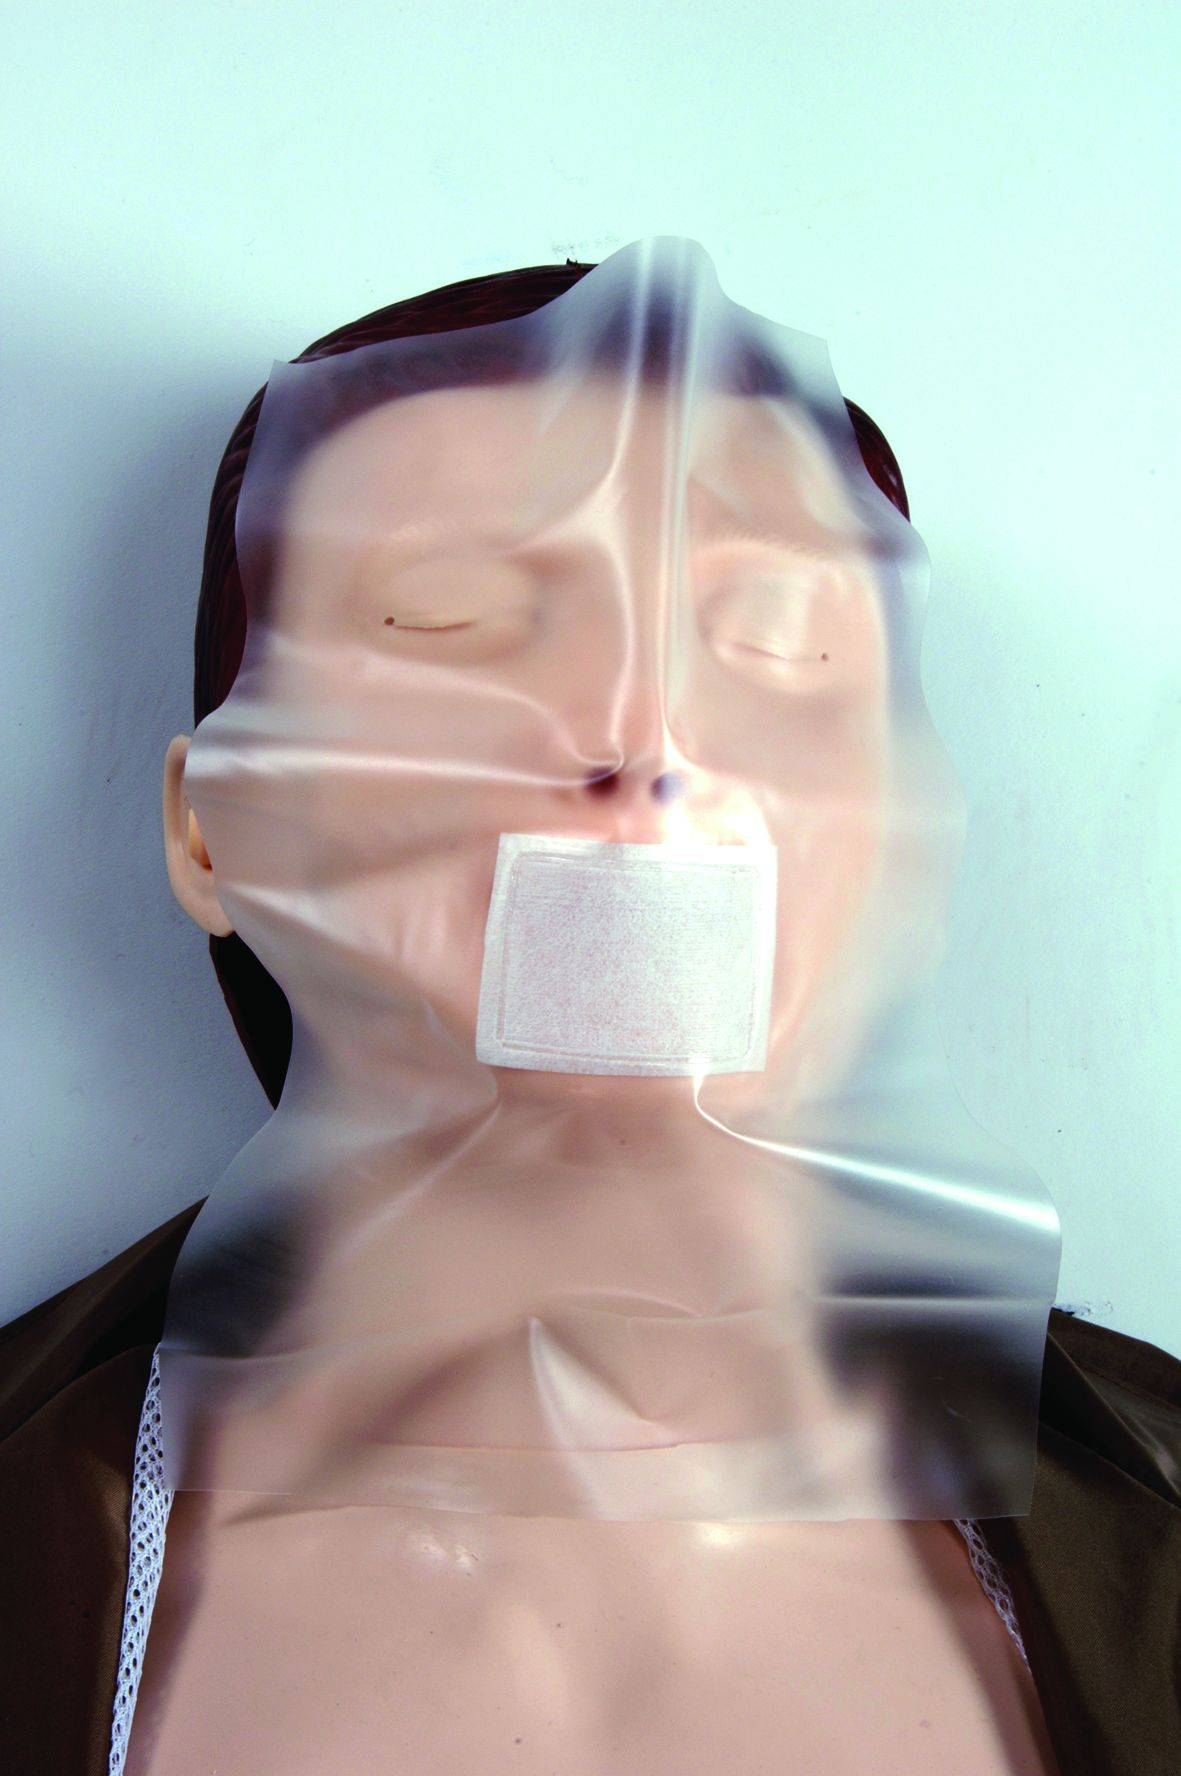 ETM_Mouth-to-mouth Face Shield Sheet 3